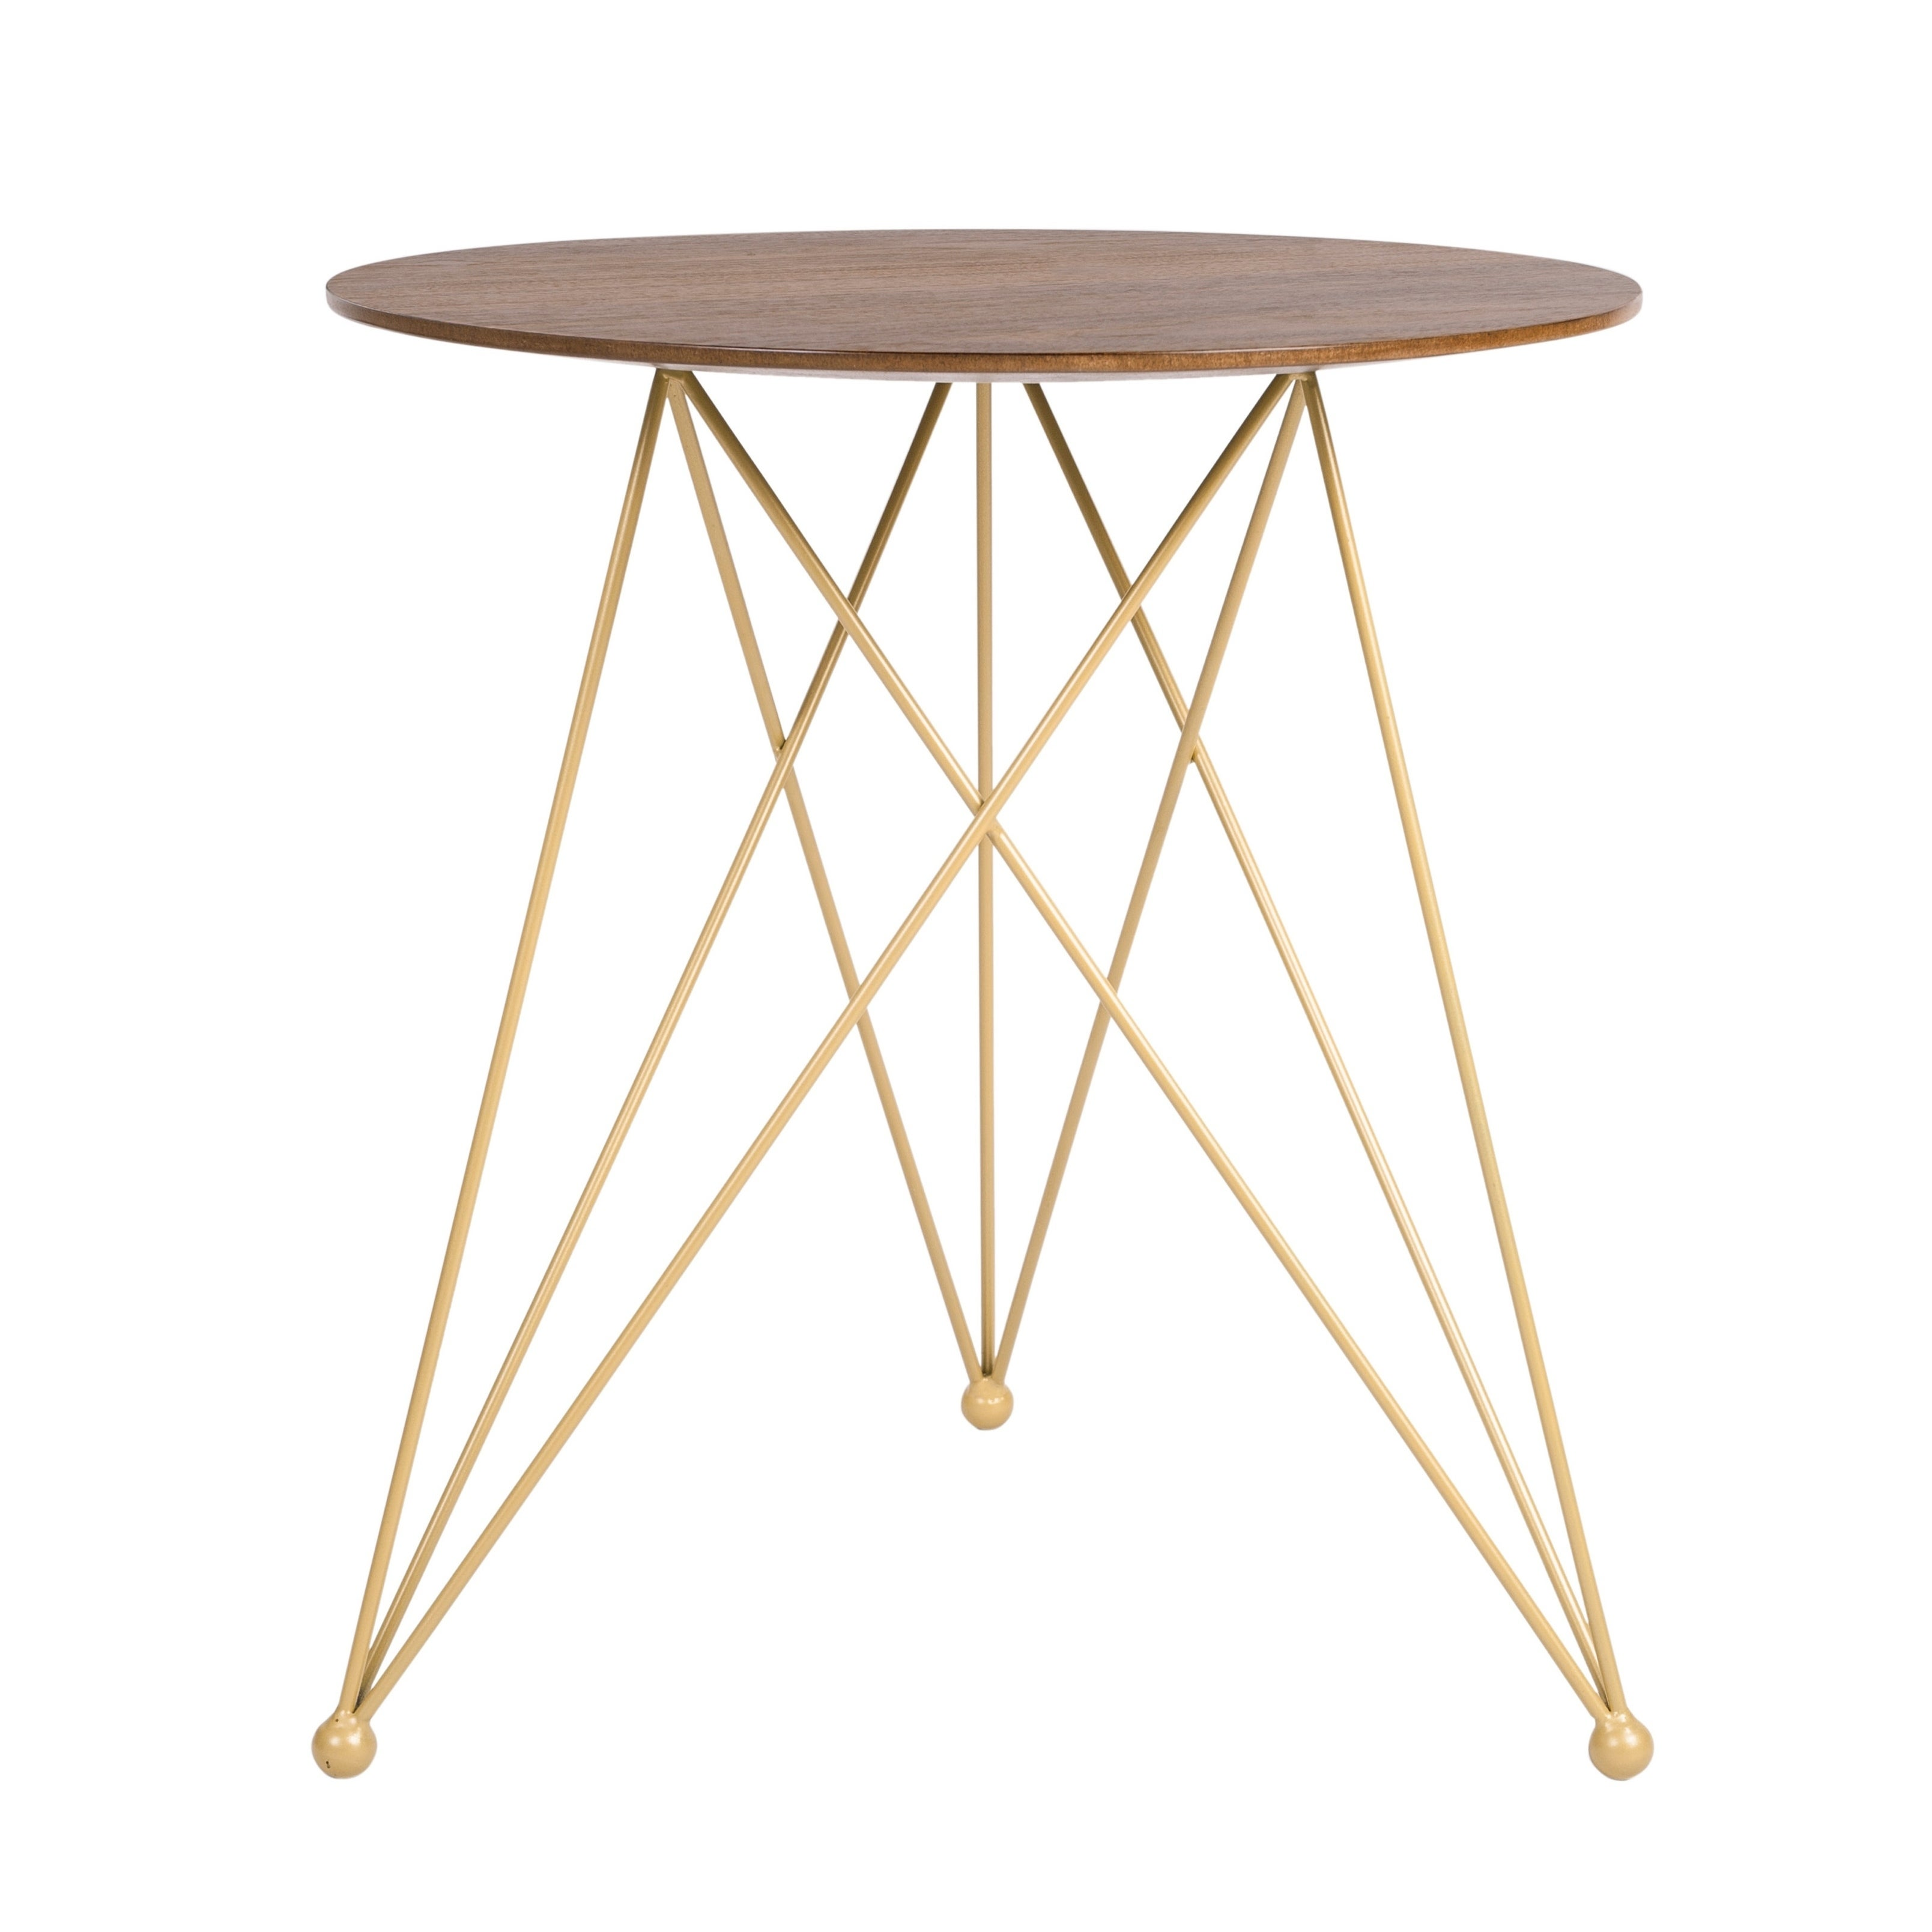 Elle Decor Livvy Burnt Sienna/Gold Wood and Metal Modern Side Table